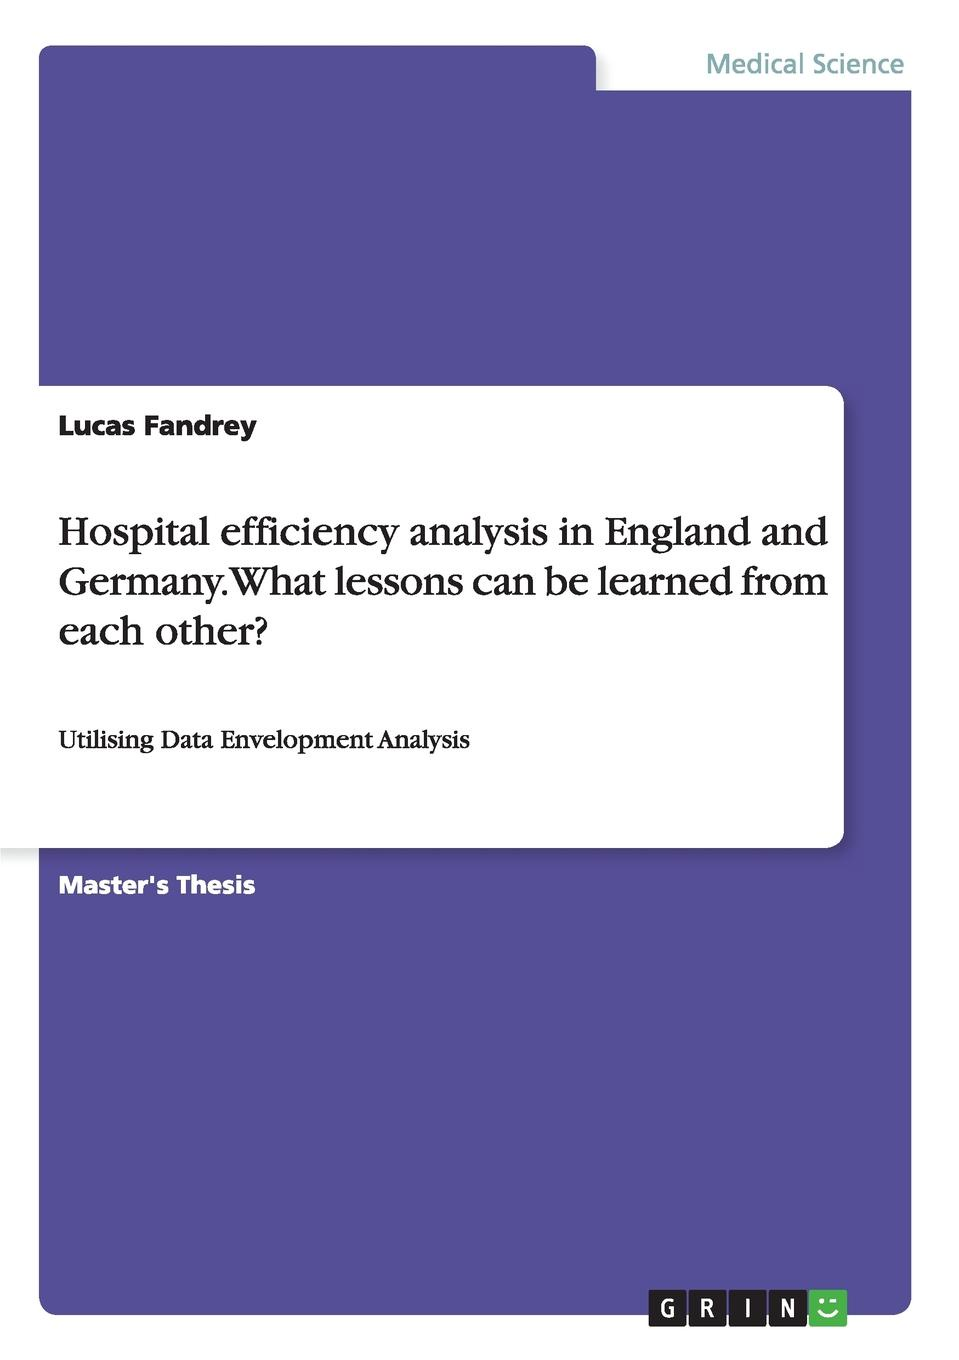 Lucas Fandrey Hospital efficiency analysis in England and Germany. What lessons can be learned from each other. james hospitals t